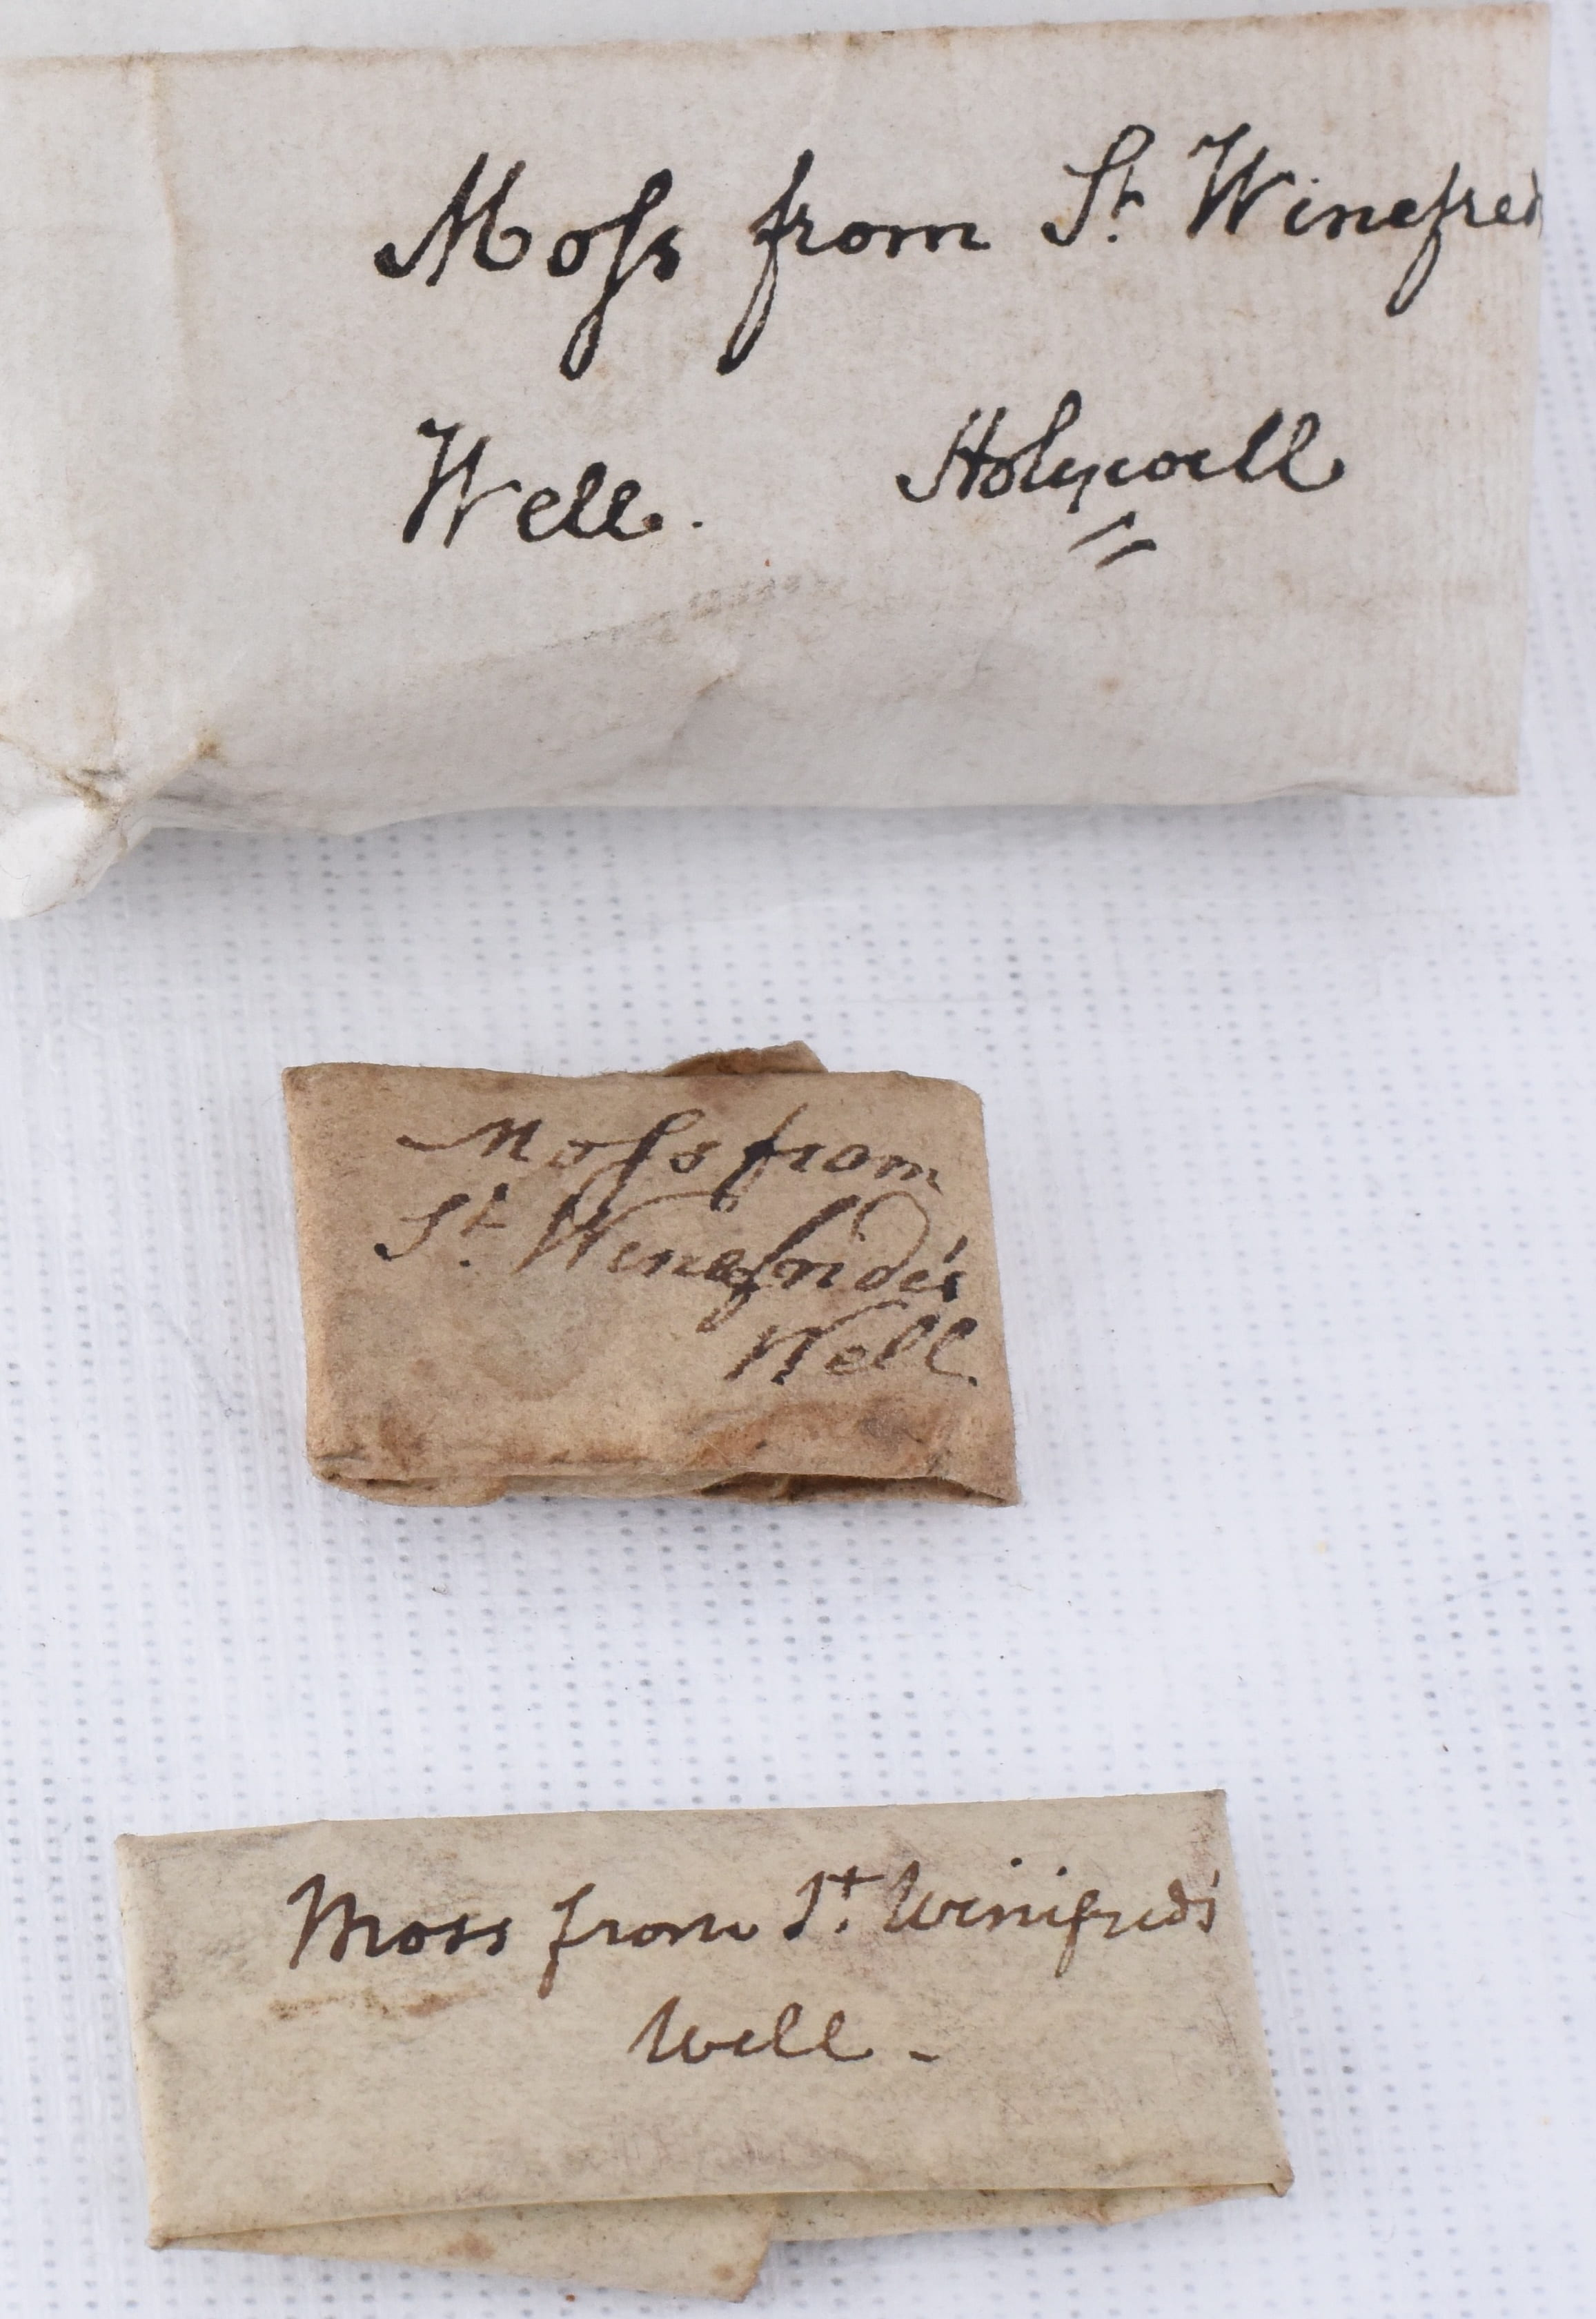 Photo of three varying sized and shades of white to brown paper parcels all handwritten with inscription: Moss from St Winefride's Well. On a white background.